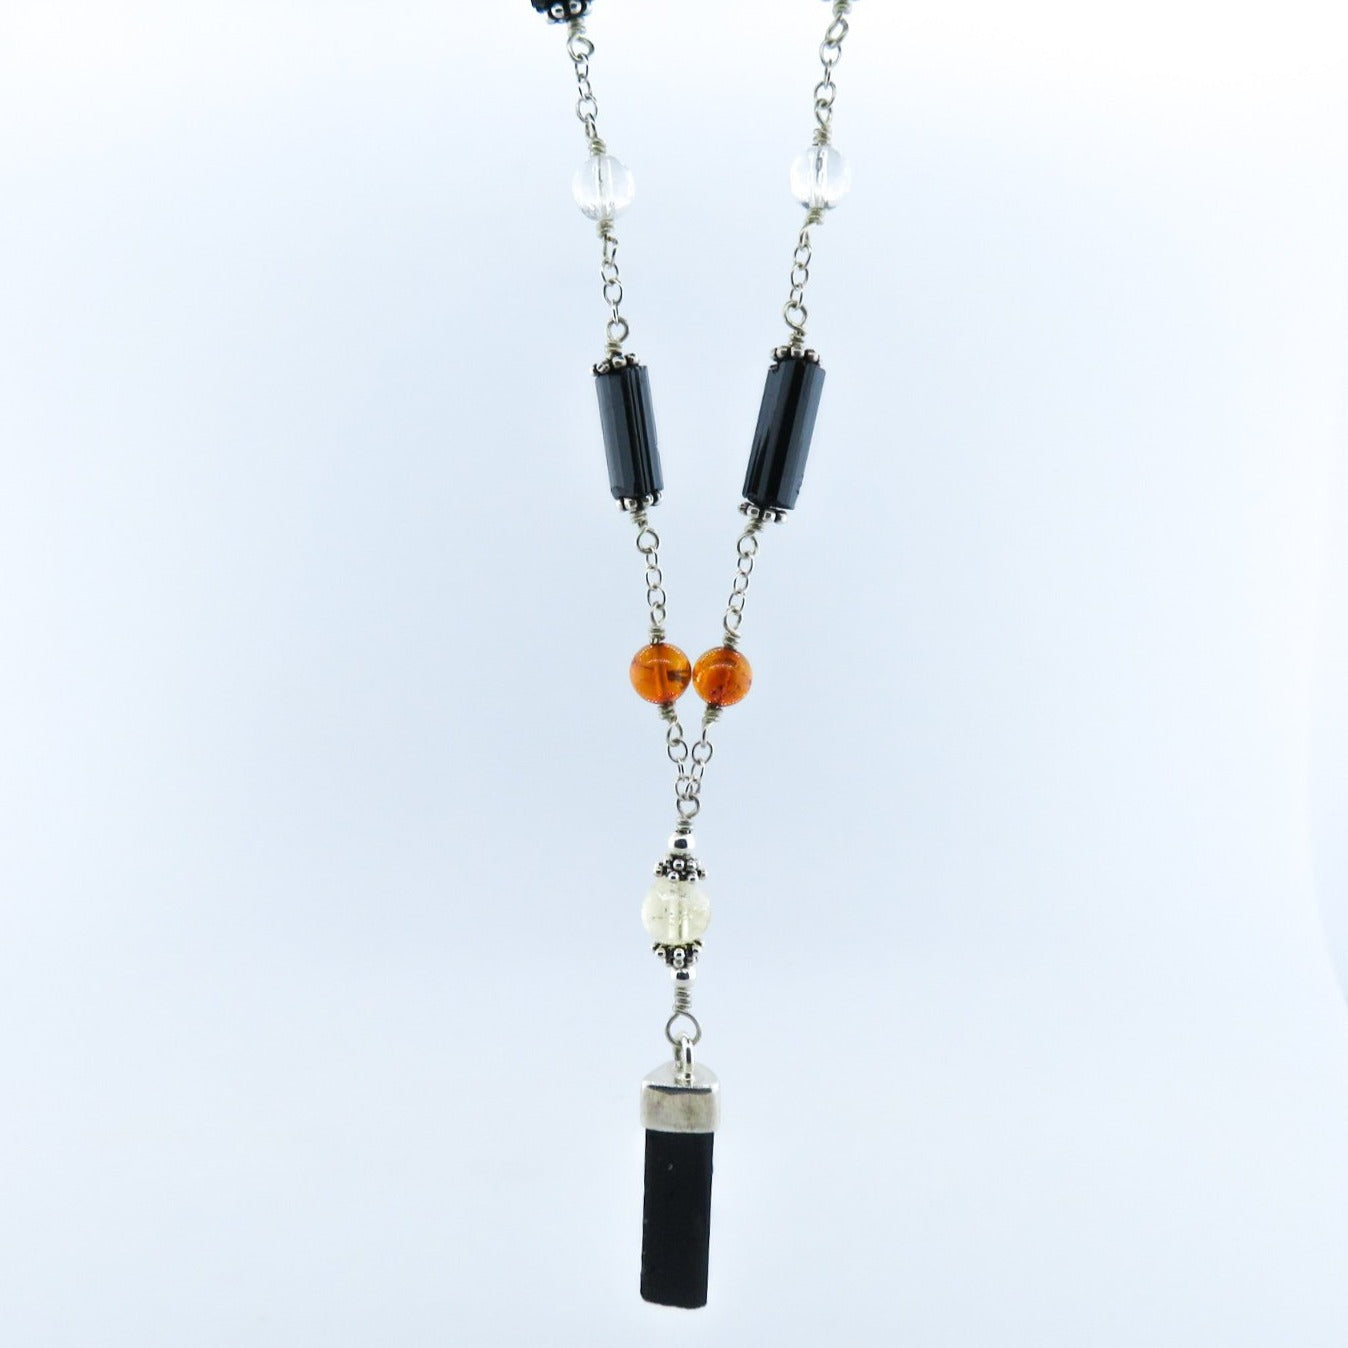 Black Tourmaline Necklace with Amber, Crystal, Citrine and Sterling Silver